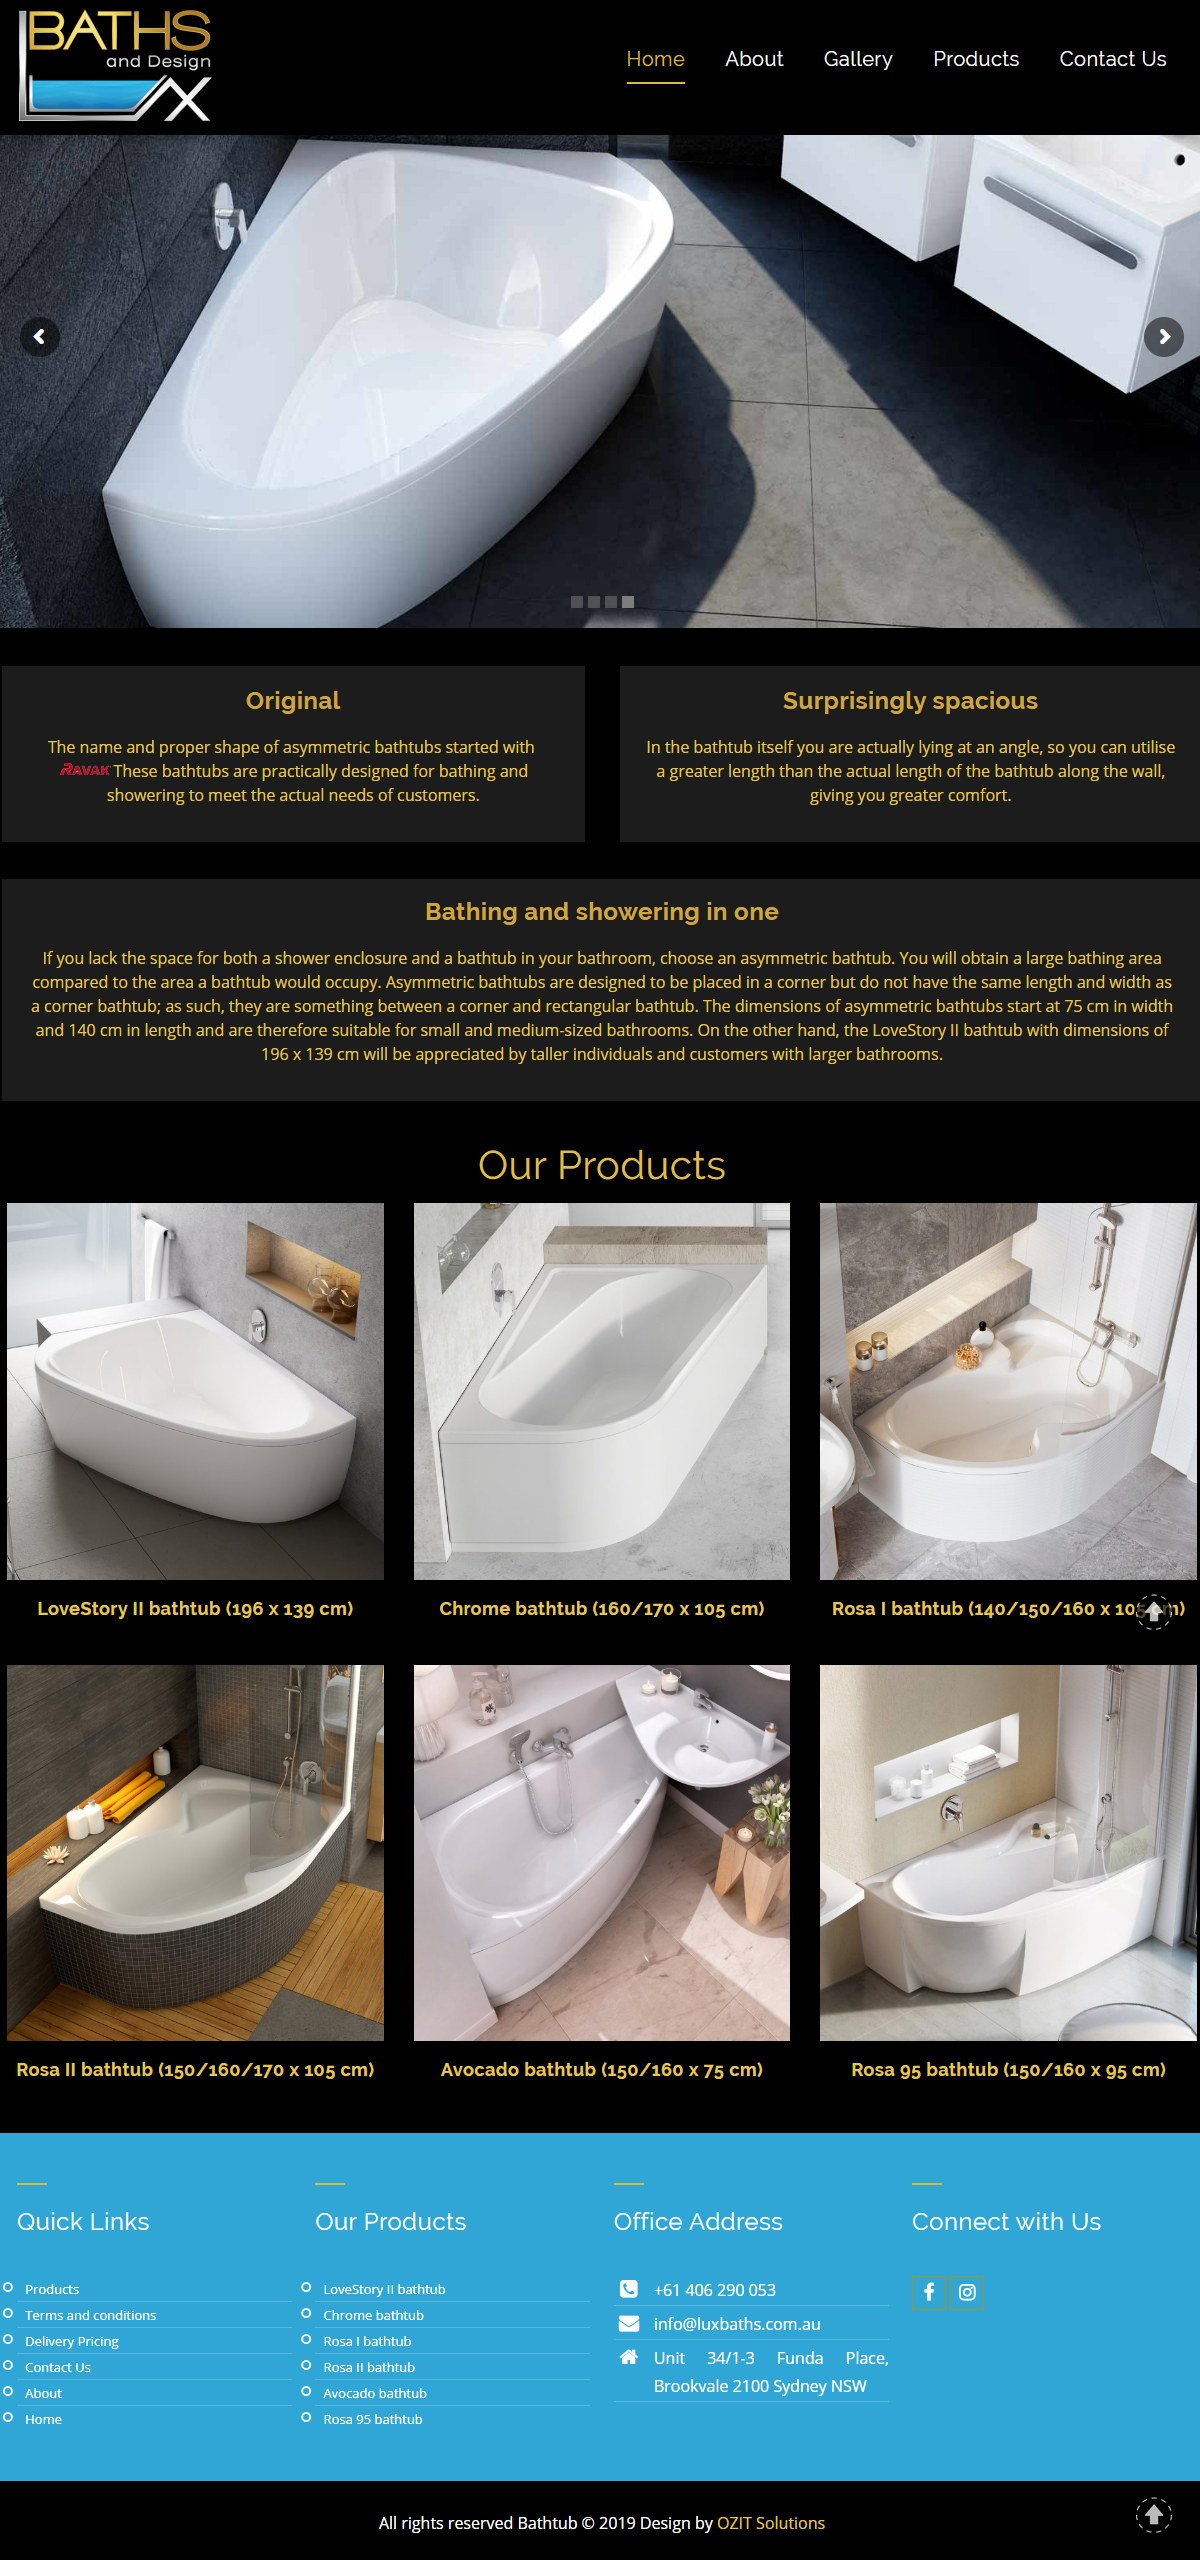 Lux Baths and Designs